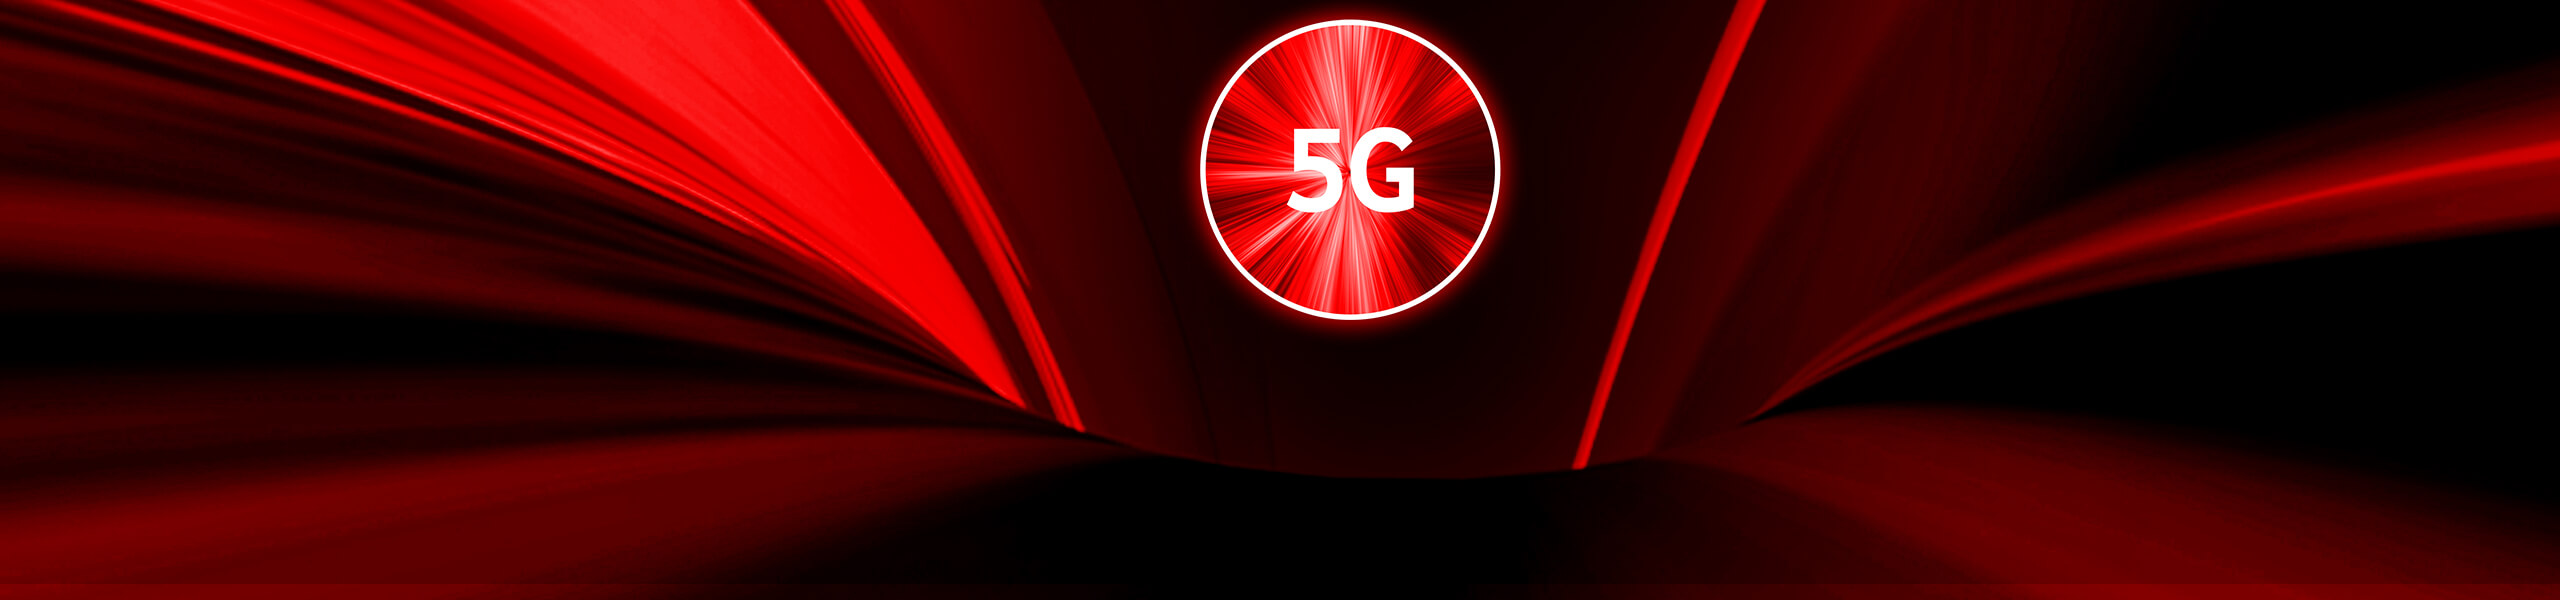 Vodafone - Voted UK's Best Mobile Network | Now With 5G